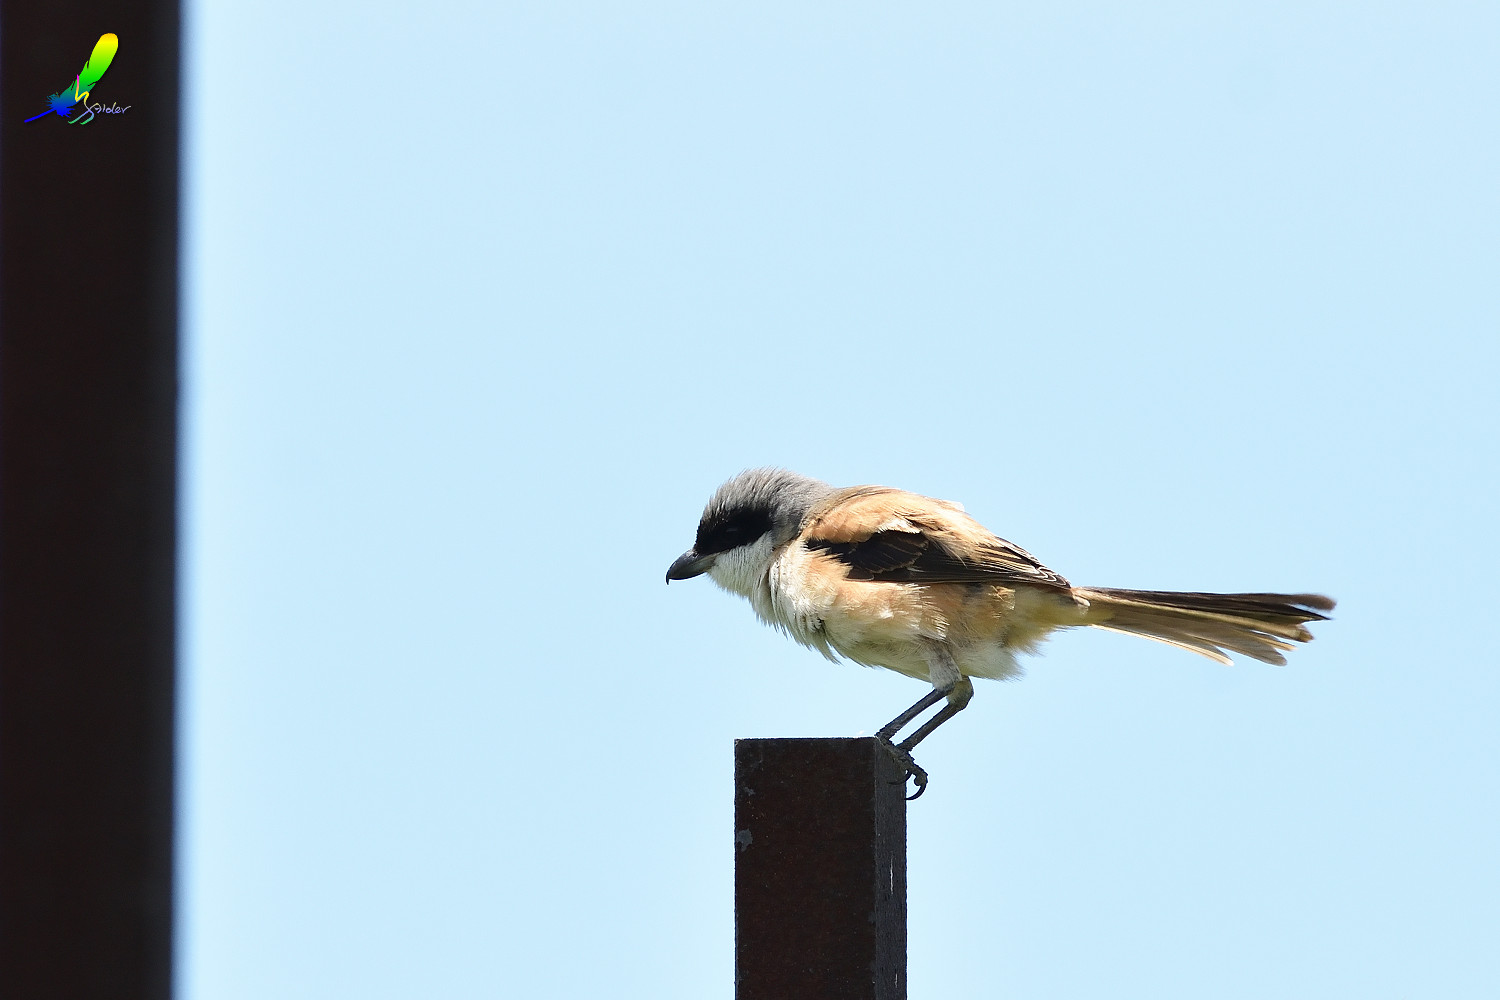 Long-tailed_Shrike_8426